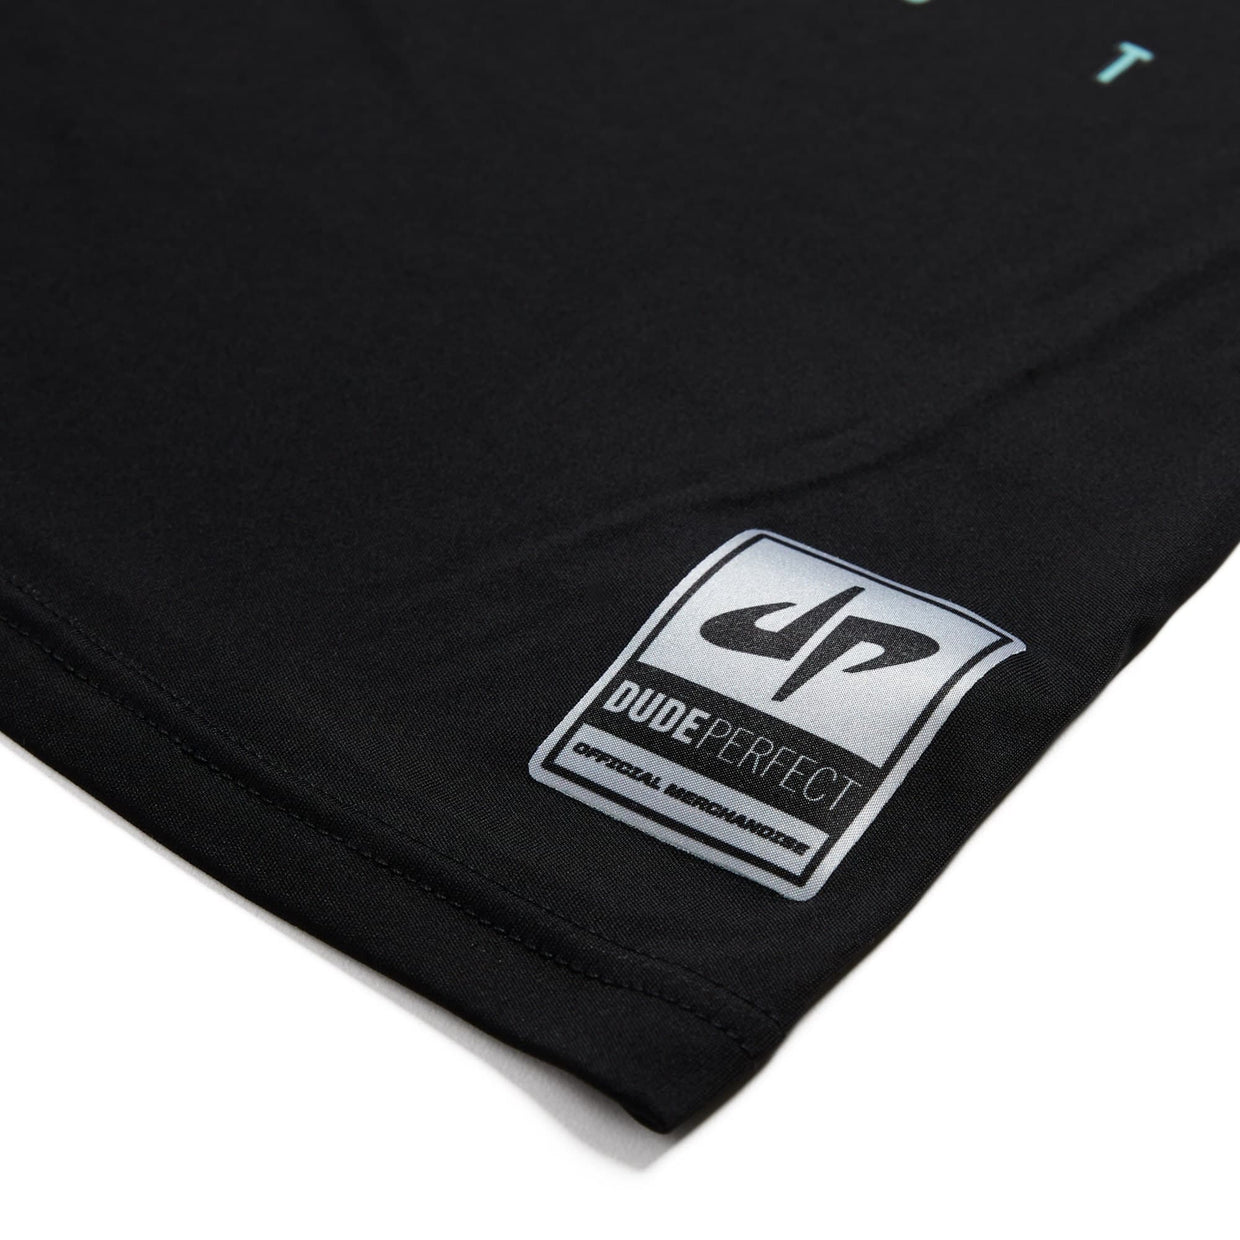 Crushing Diamonds 5 Performance Tee